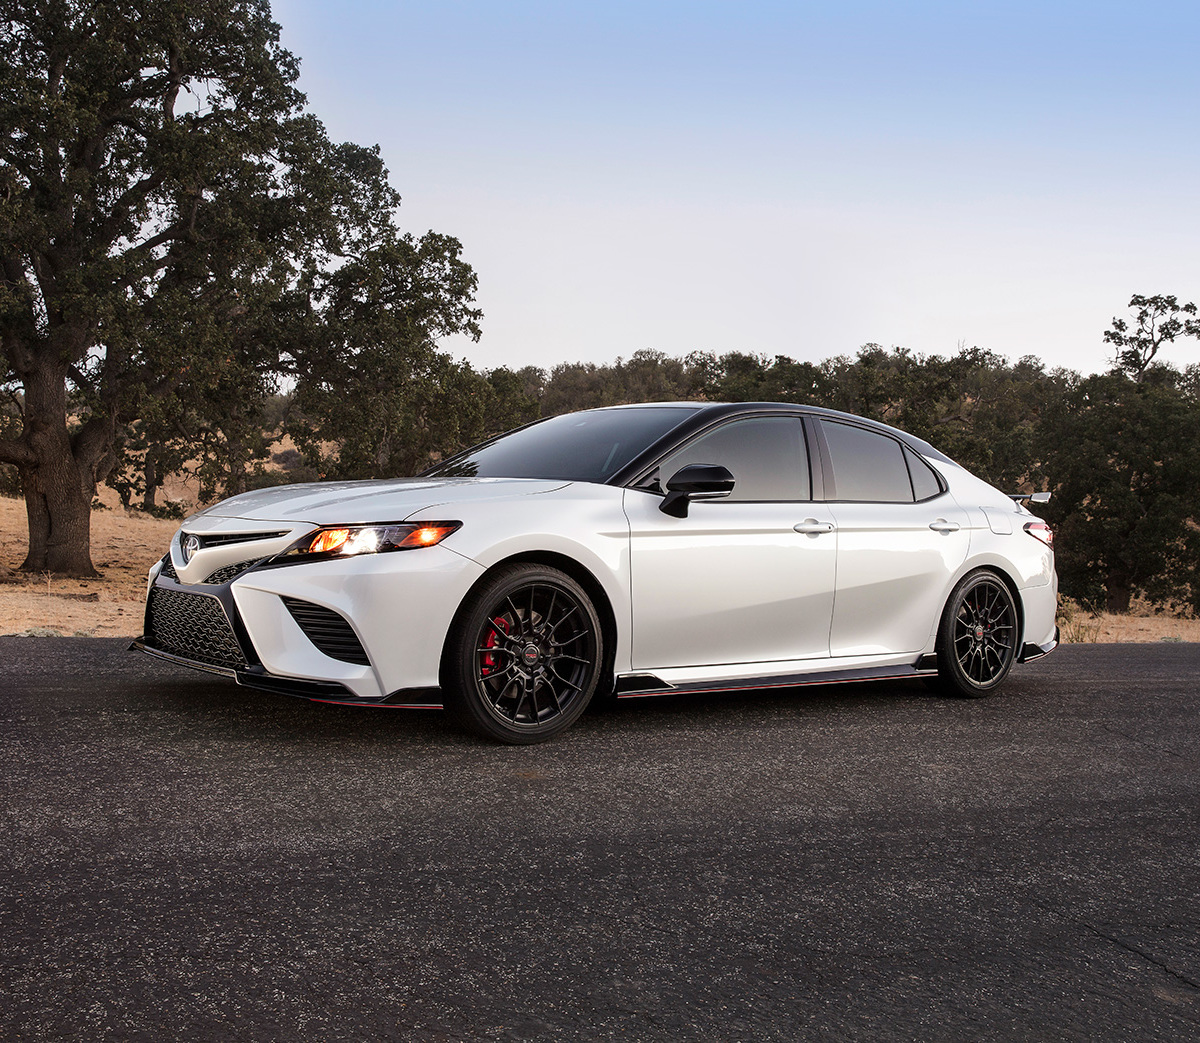 Model Features of the 2020 Toyota Camry at Tri County Toyota | White 2020 Camry TRD